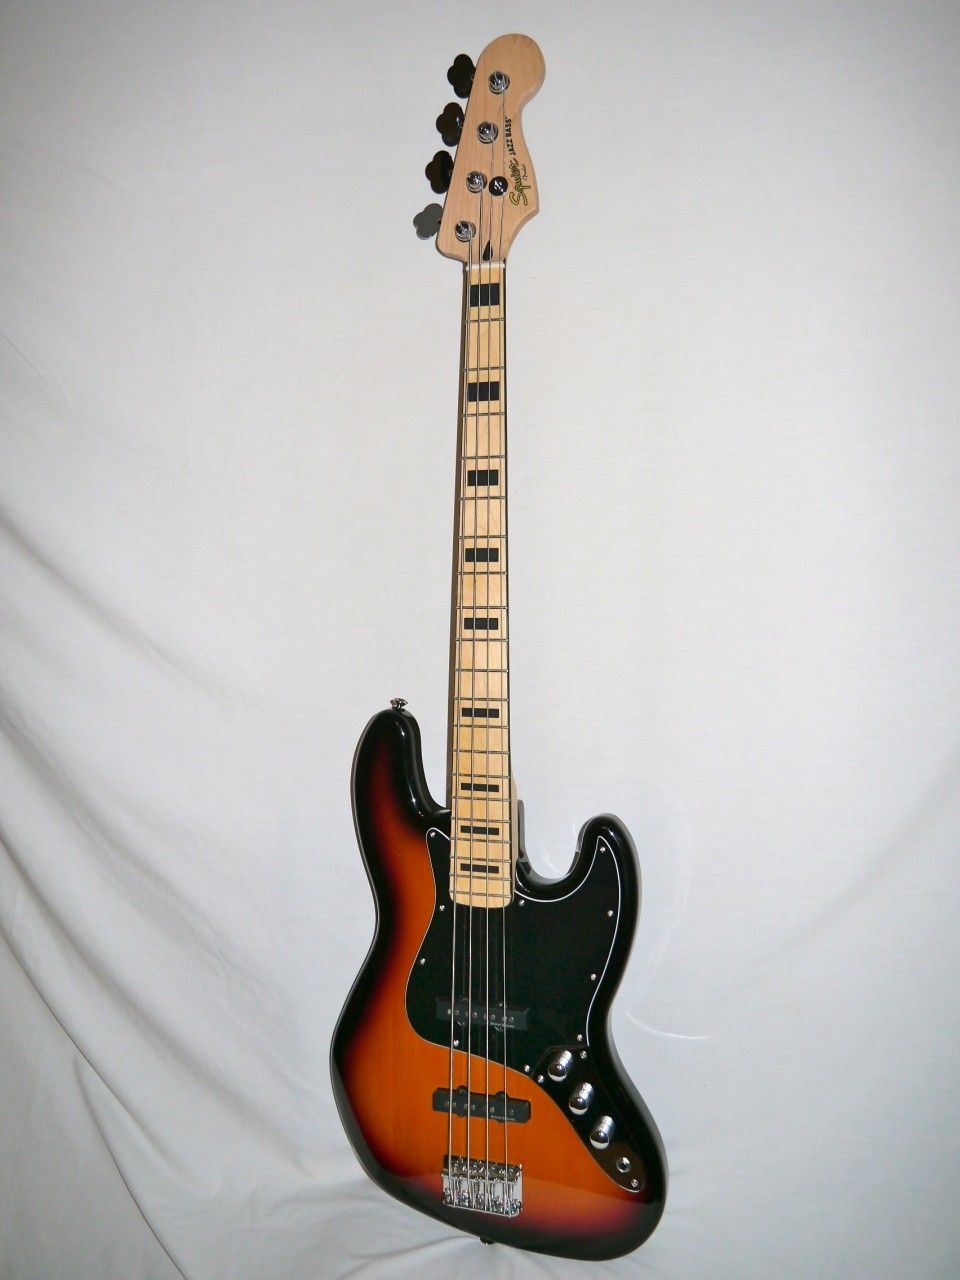 Indian Creek Guitars Squier Vintage Modified 70 S Jazz Bass Three Tone Sunburst Http Www Indiancreekguitars Com Squier Vintage Modified 70s Jazz Bass T